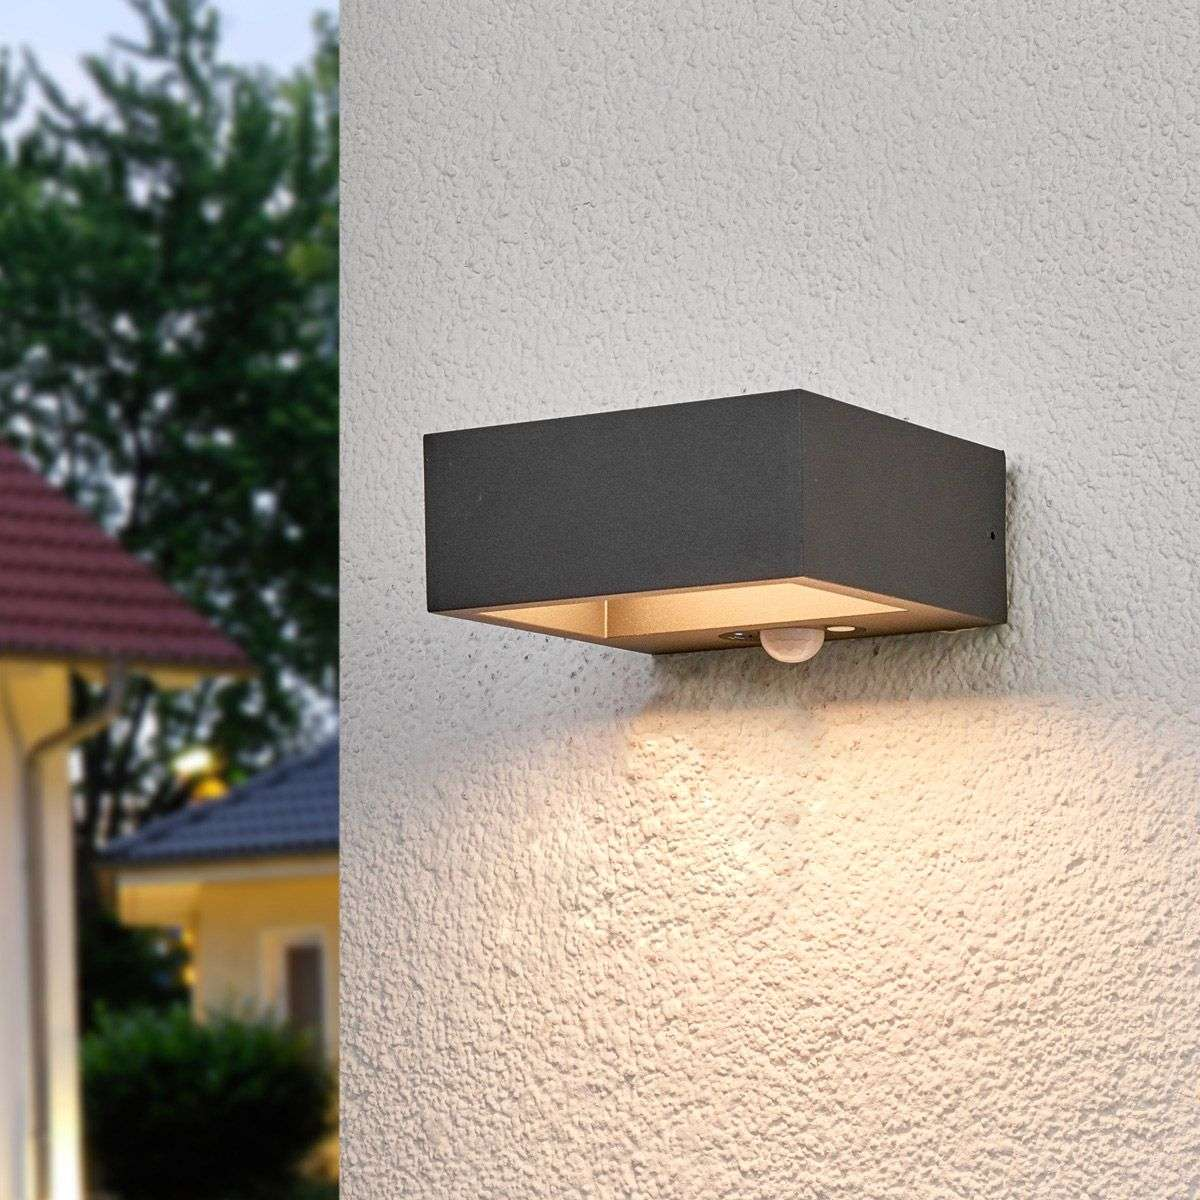 solar powered led outdoor wall light mahra sensor. Black Bedroom Furniture Sets. Home Design Ideas